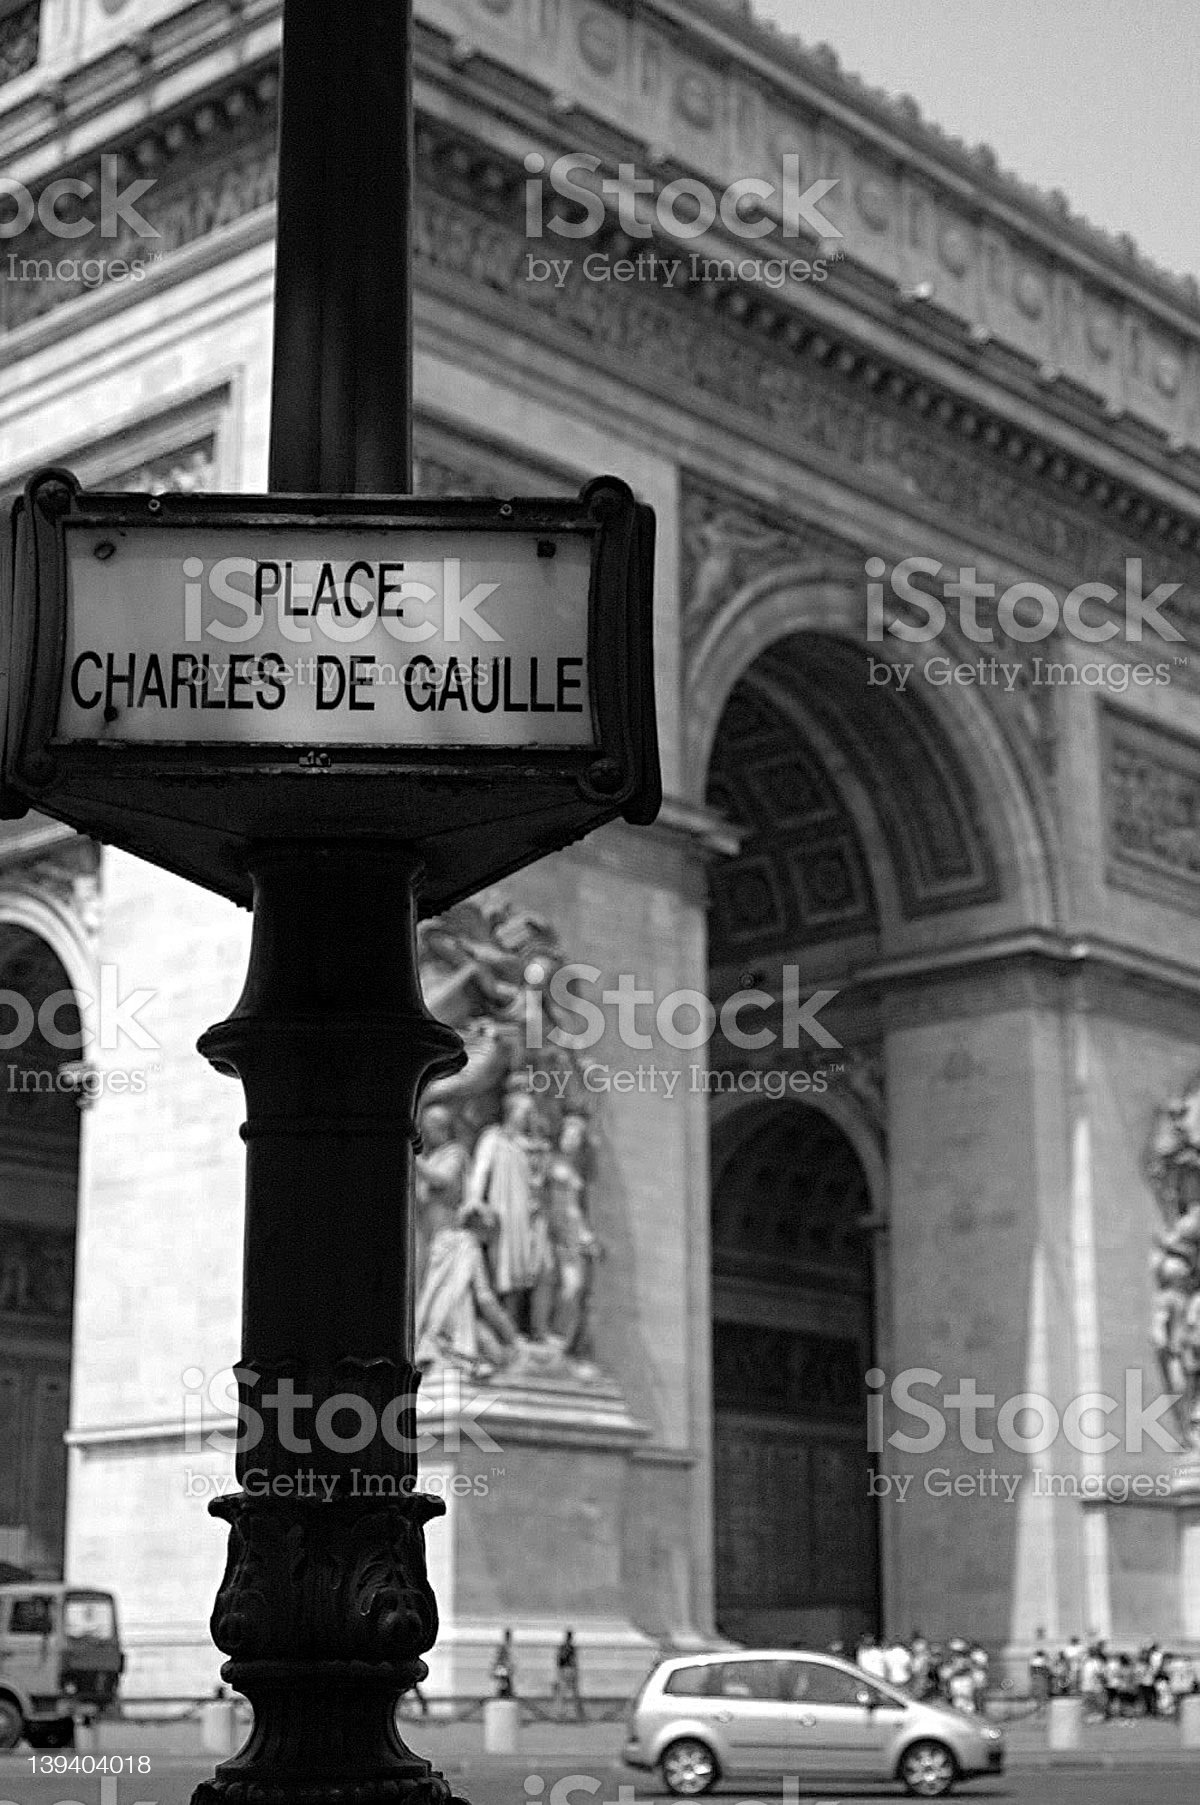 Place de l'Etoile royalty-free stock photo